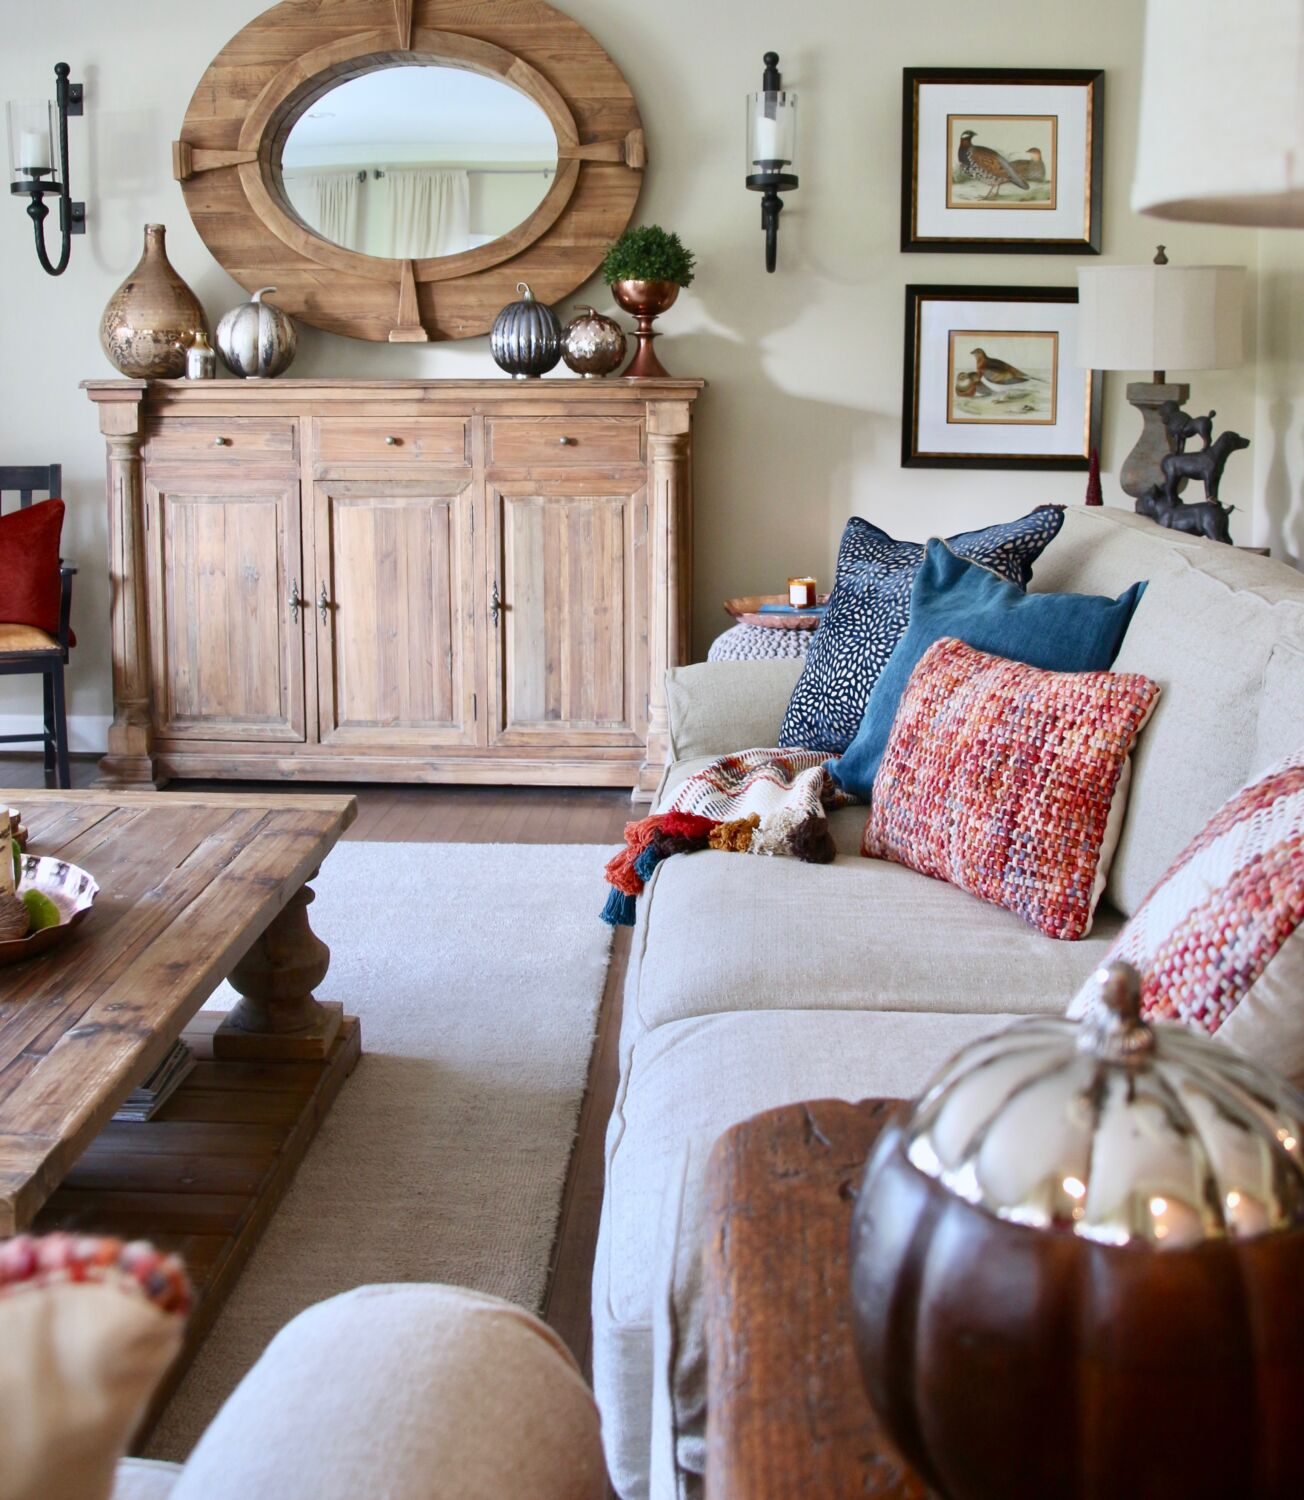 29 Cozy And Inviting Fall Living Room Décor Ideas: Decorating For Fall: 7 Easy Tips To Creating A Rich